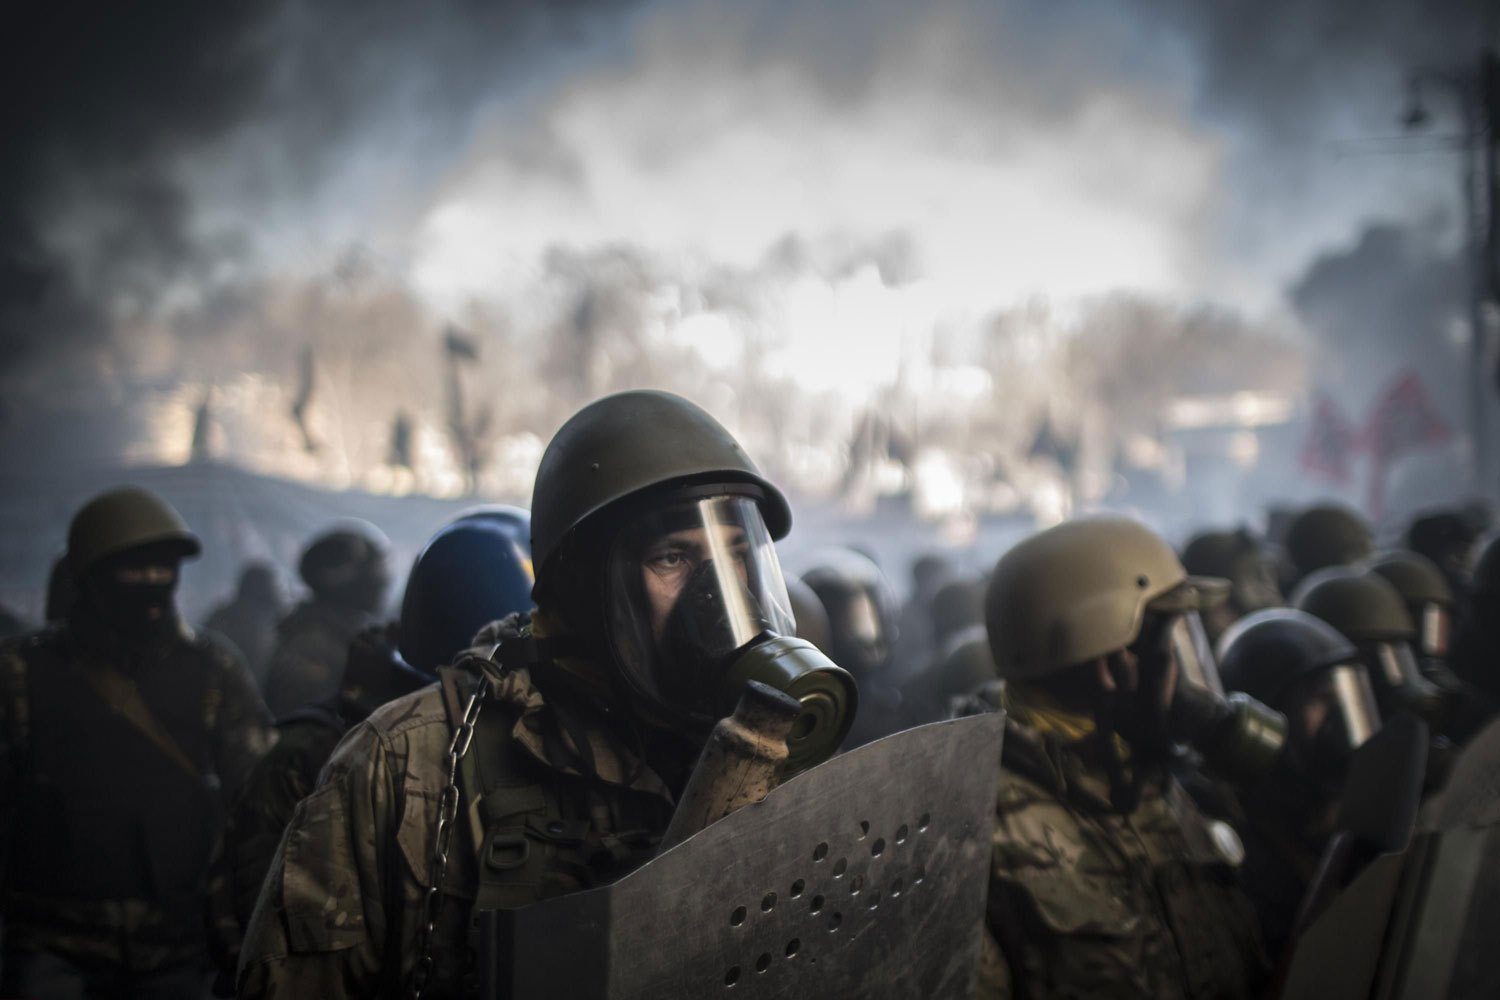 Protesters are ready to storm Kiev city hall as Maidan self-defence activists guard the building to prevent it during their confrontation in Kiev, on Feb. 18, 2014.